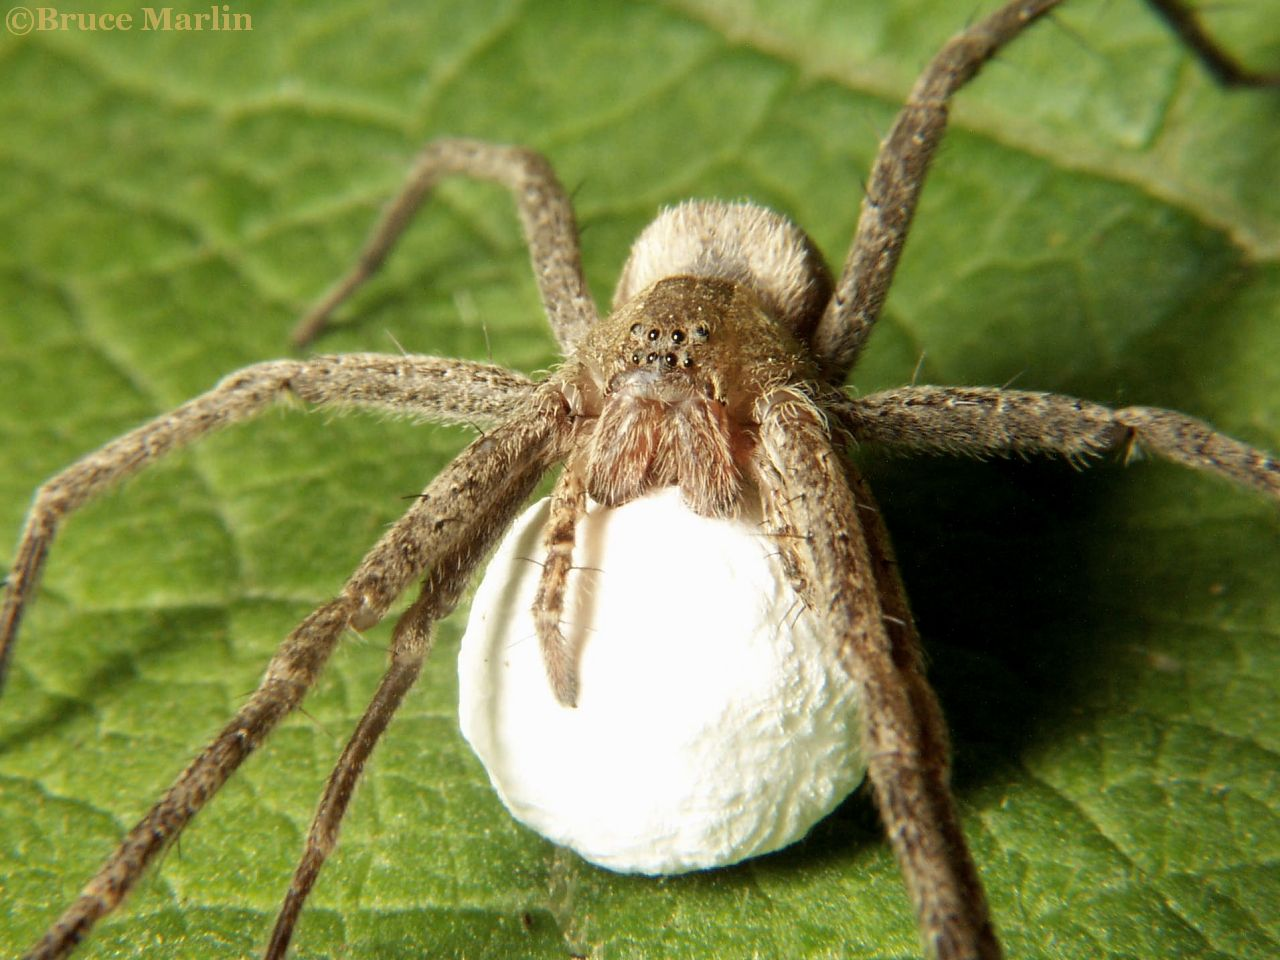 American house spider egg sac - photo#40